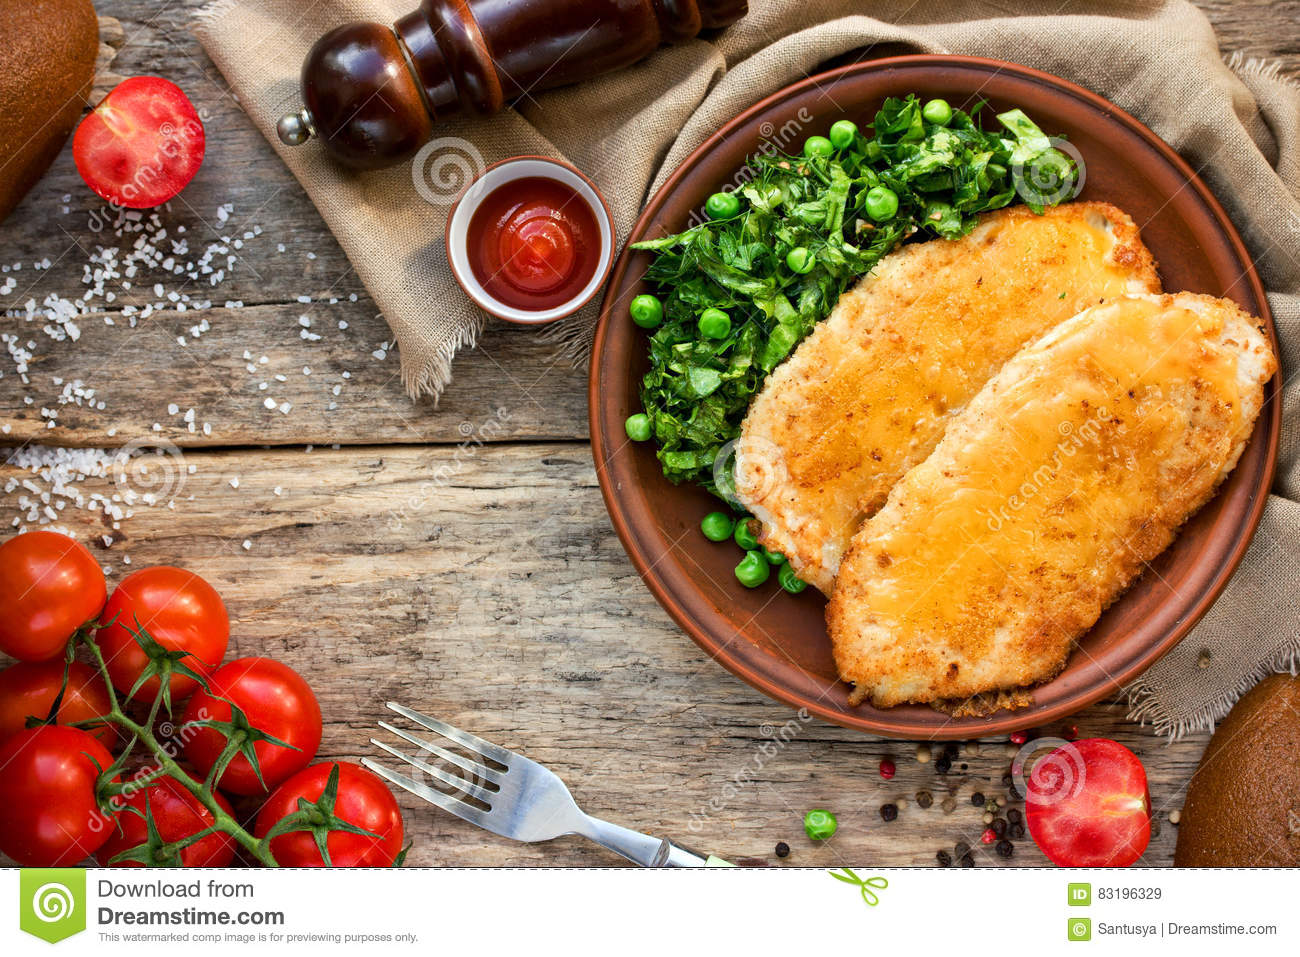 Chicken schnitzel with or cordon bleu with green salad and cherry tomatoes in a rustic style on the old wooden background